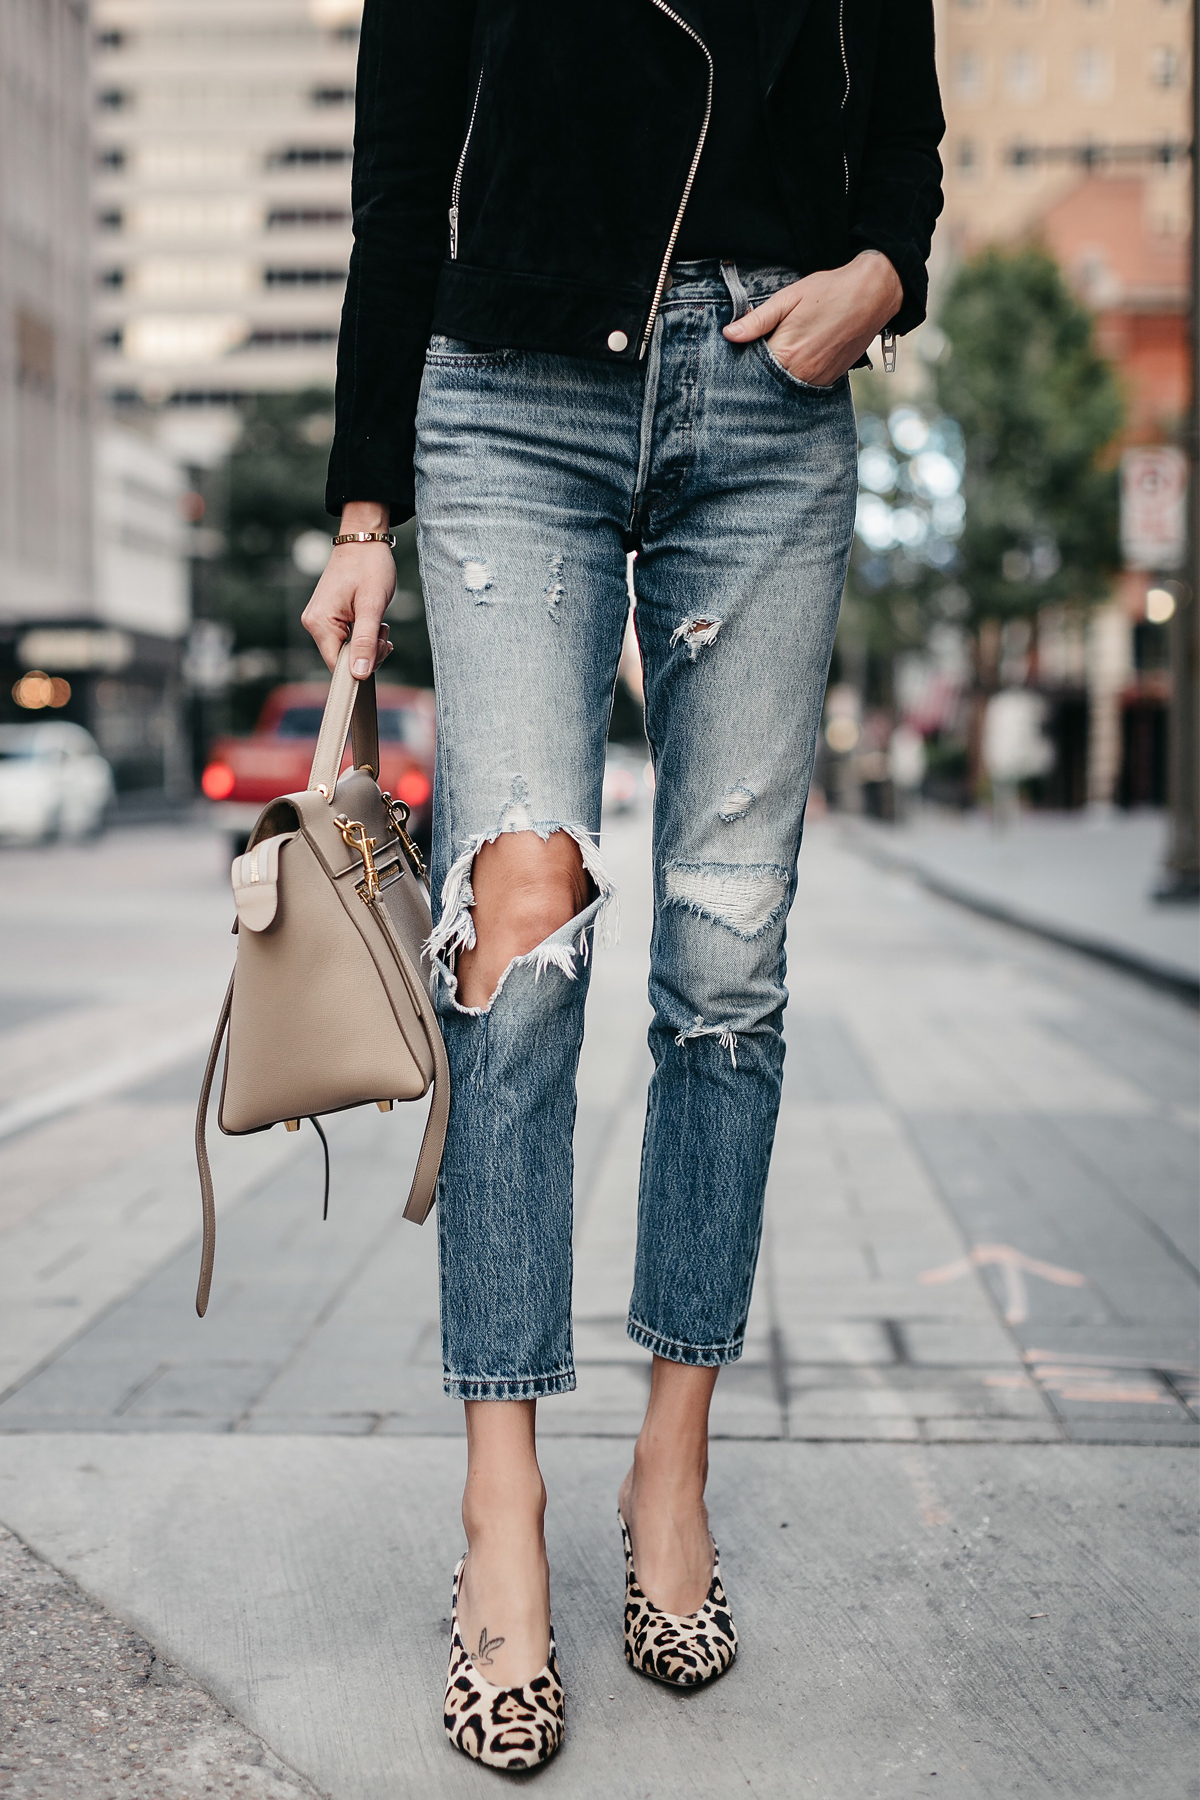 3 FALL-FASHION MUST HAVES WITH NORDSTROM